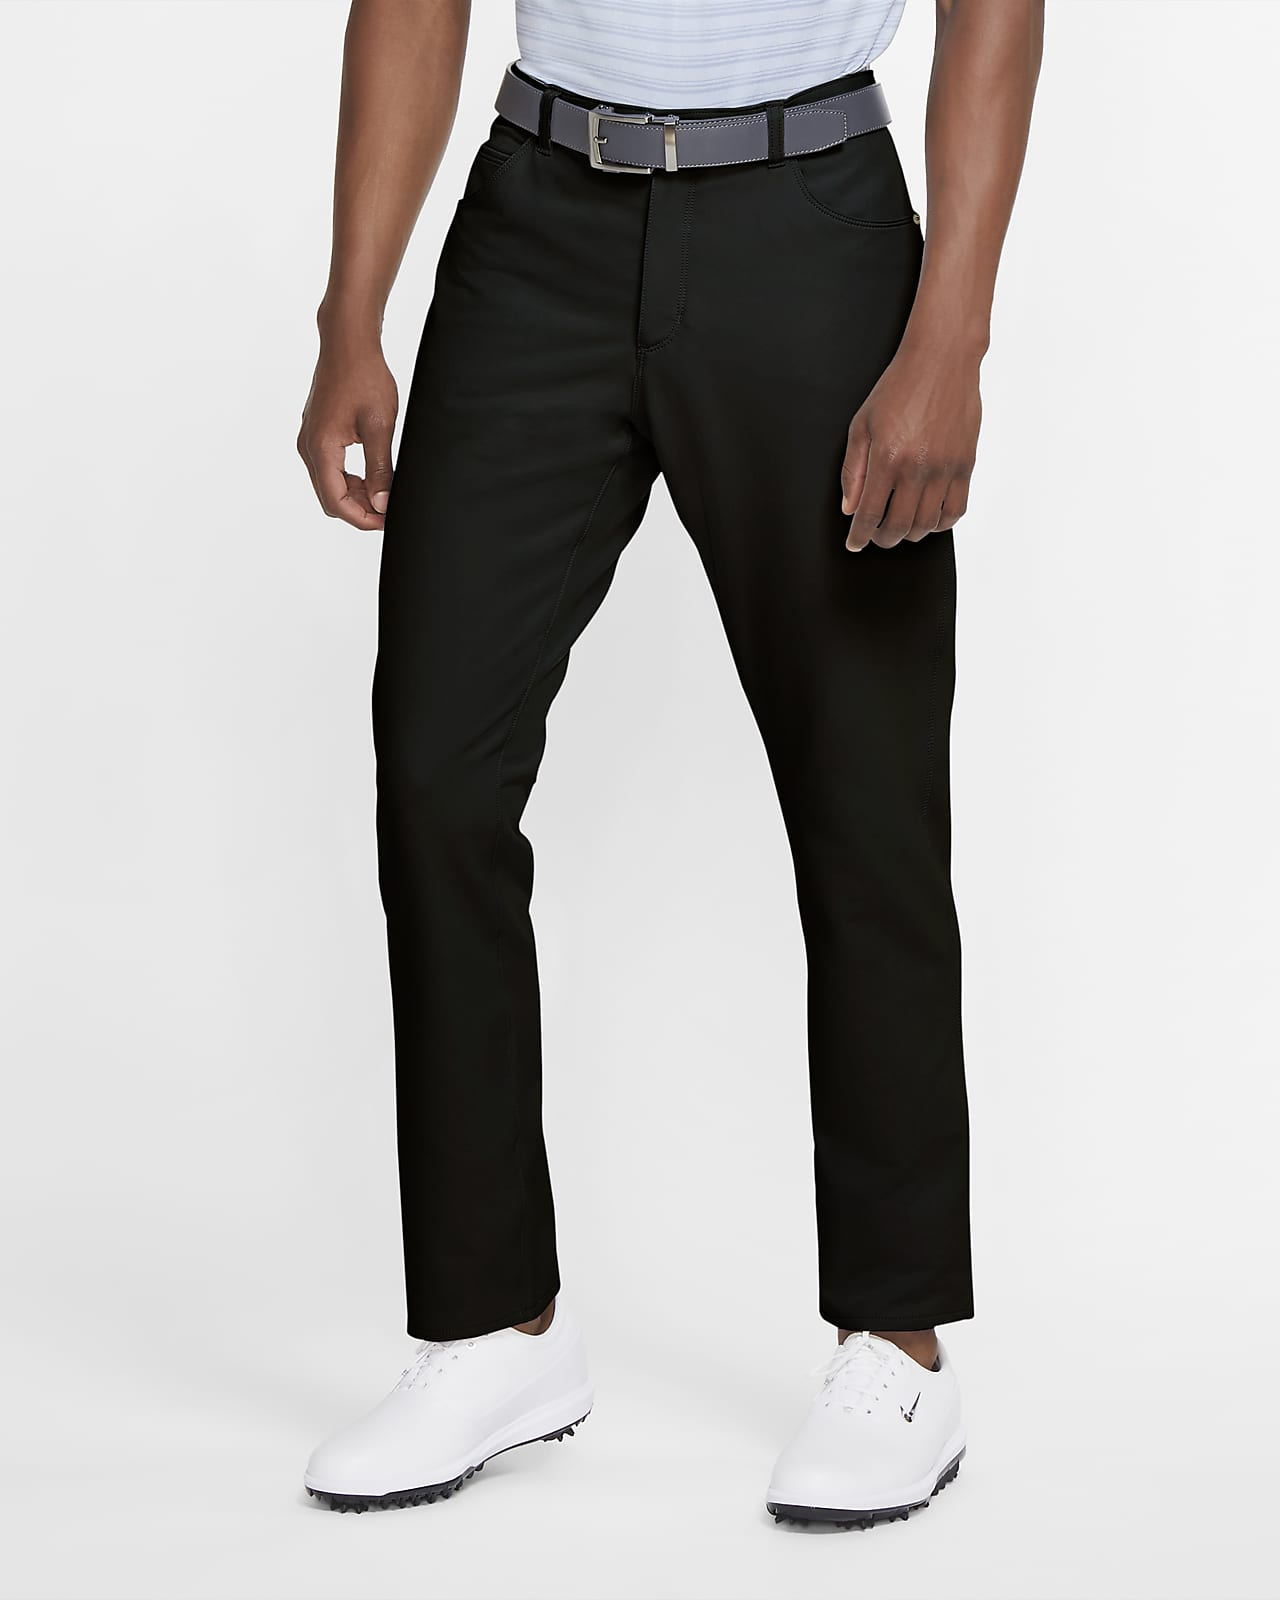 Nike Flex Repel Men's Slim Fit Golf Trousers